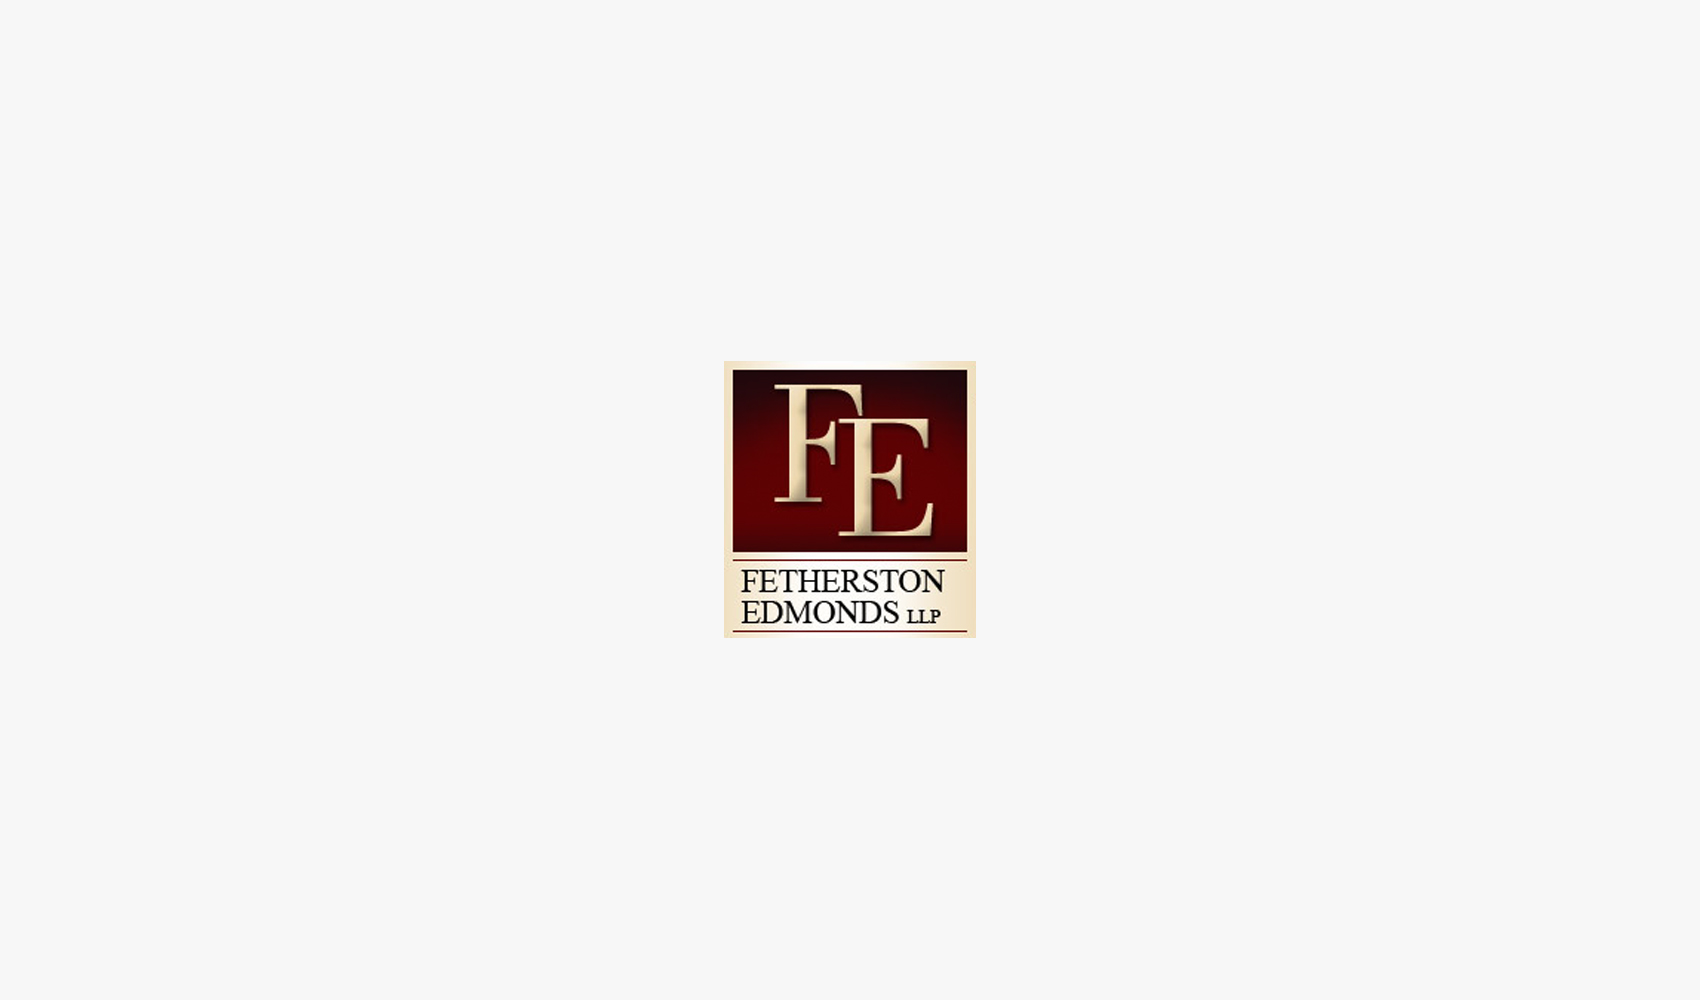 Fetherston Edmonds old logo